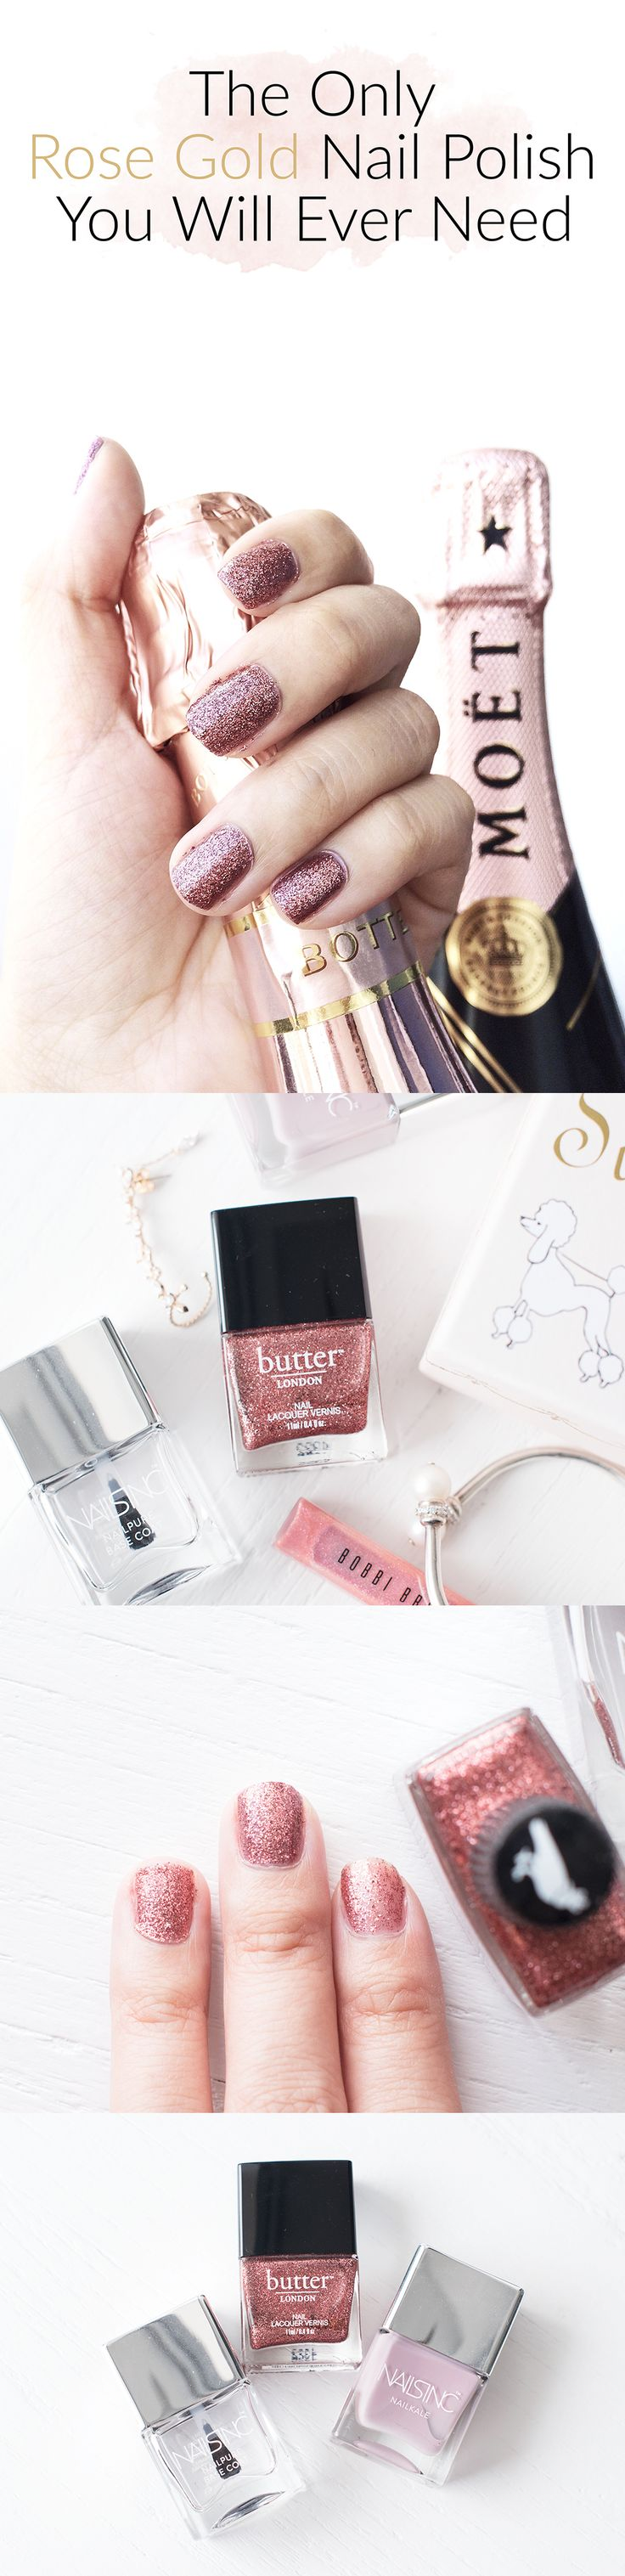 the Only Rose Gold Nail Polish You Will Ever Need: Rosie Lee by Butter London.Check out the blog post here: http://www.theskinnyscout.com/2016/09/02/rose-gold-nail-polish-butter-london-rosie-lee/